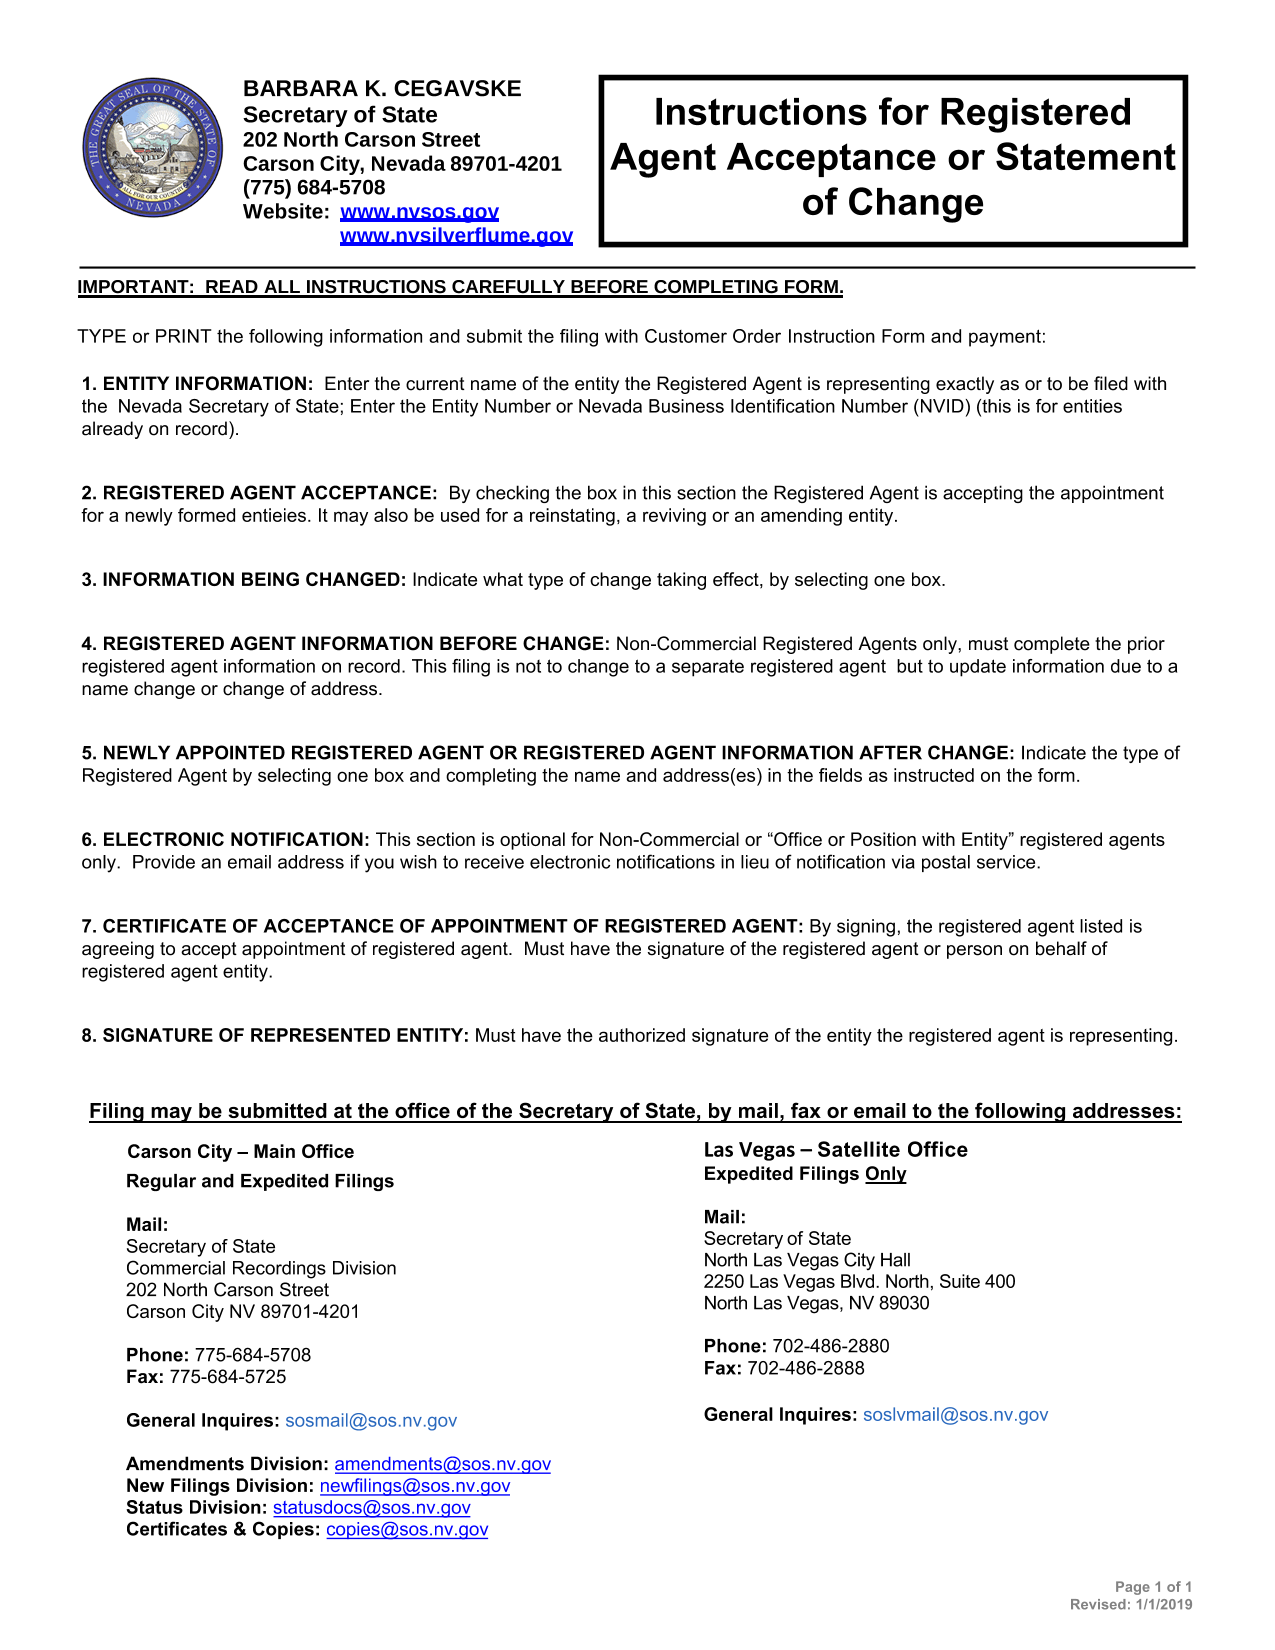 nevada-statement-of-change-of-registered-agent-by-represented-entity